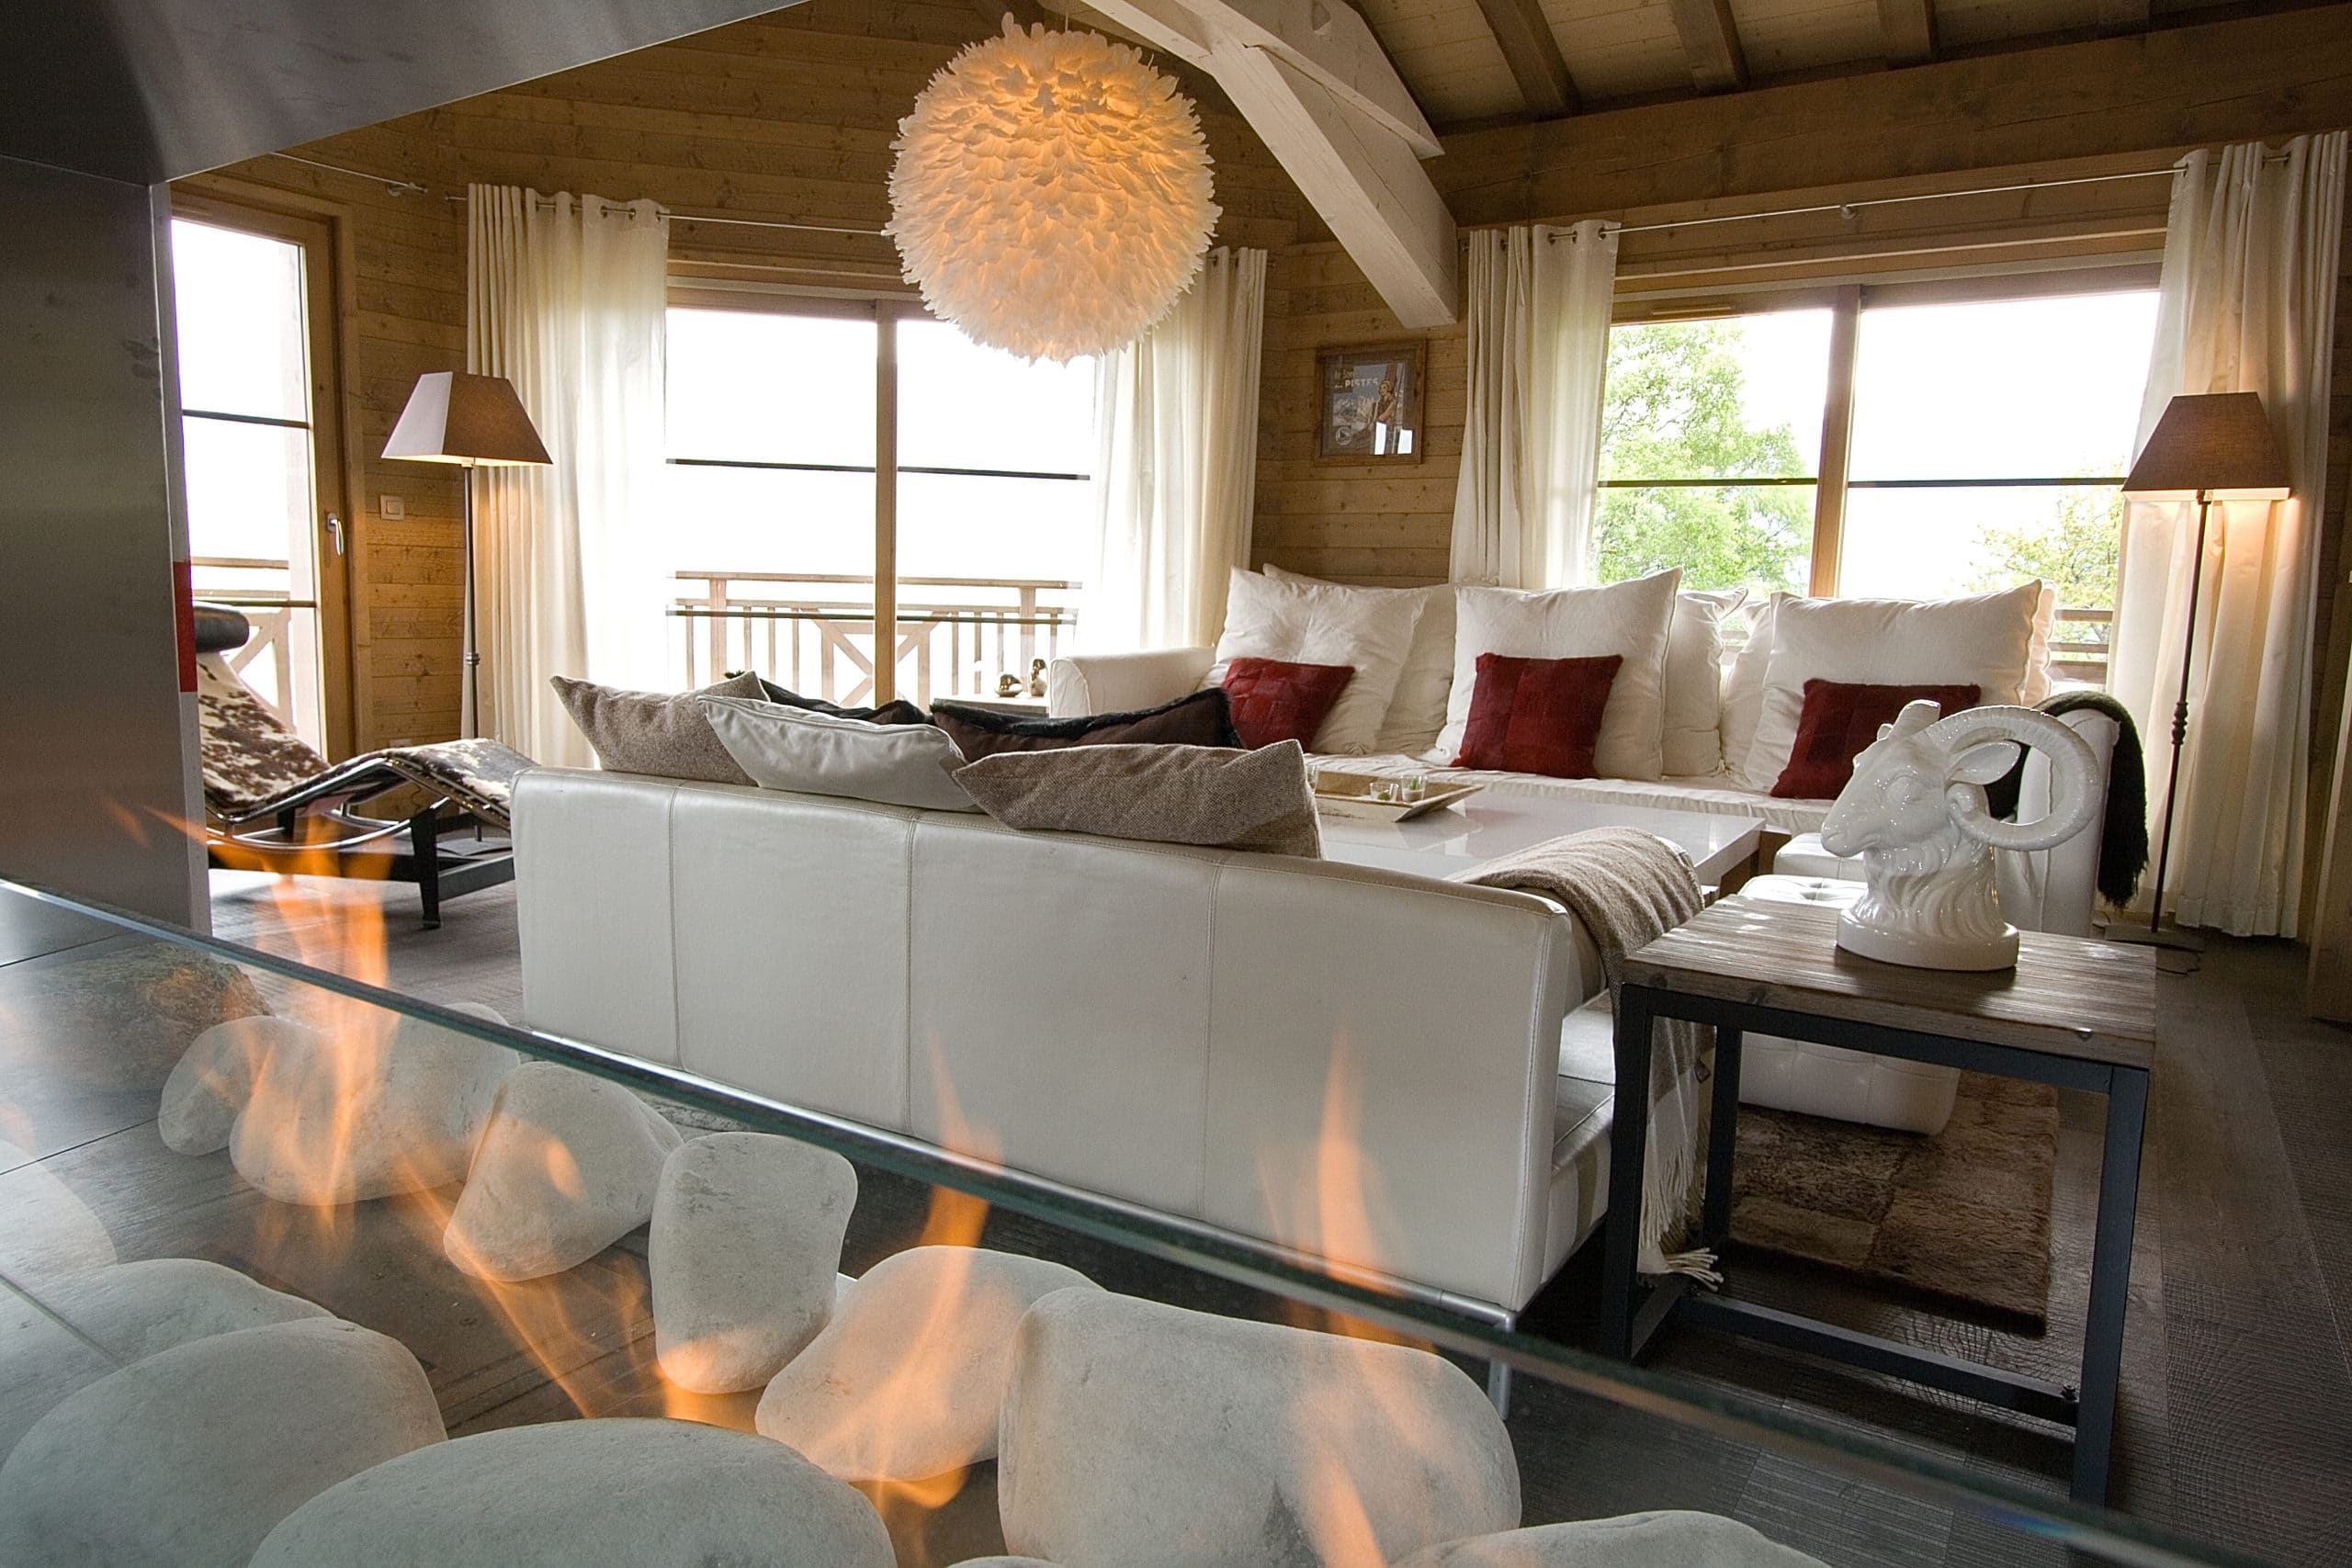 Sitting Room And Fire In Our Luxury Ski Chalet Igloo